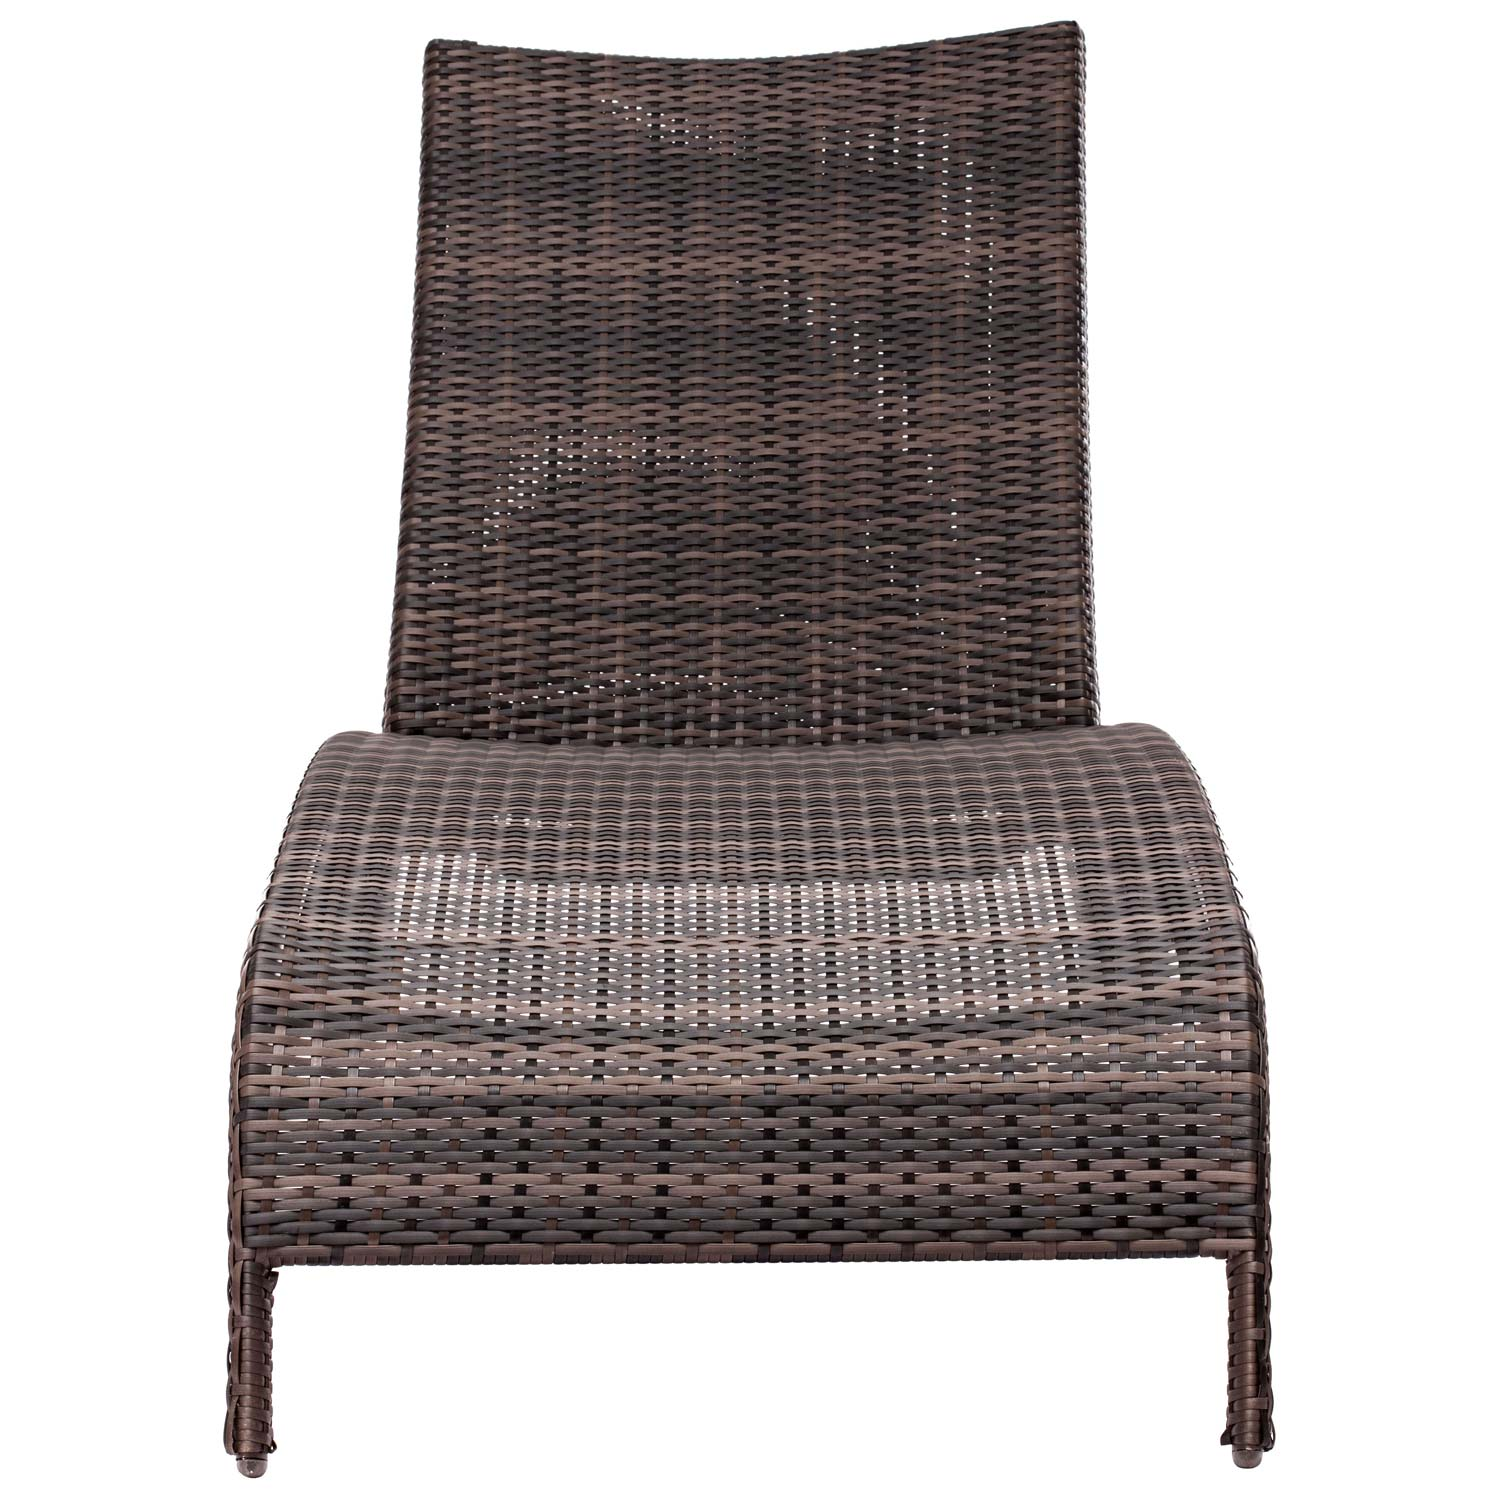 Lido Outdoor Chaise Lounge - Wicker, Wheels, Brown - ZM-703079